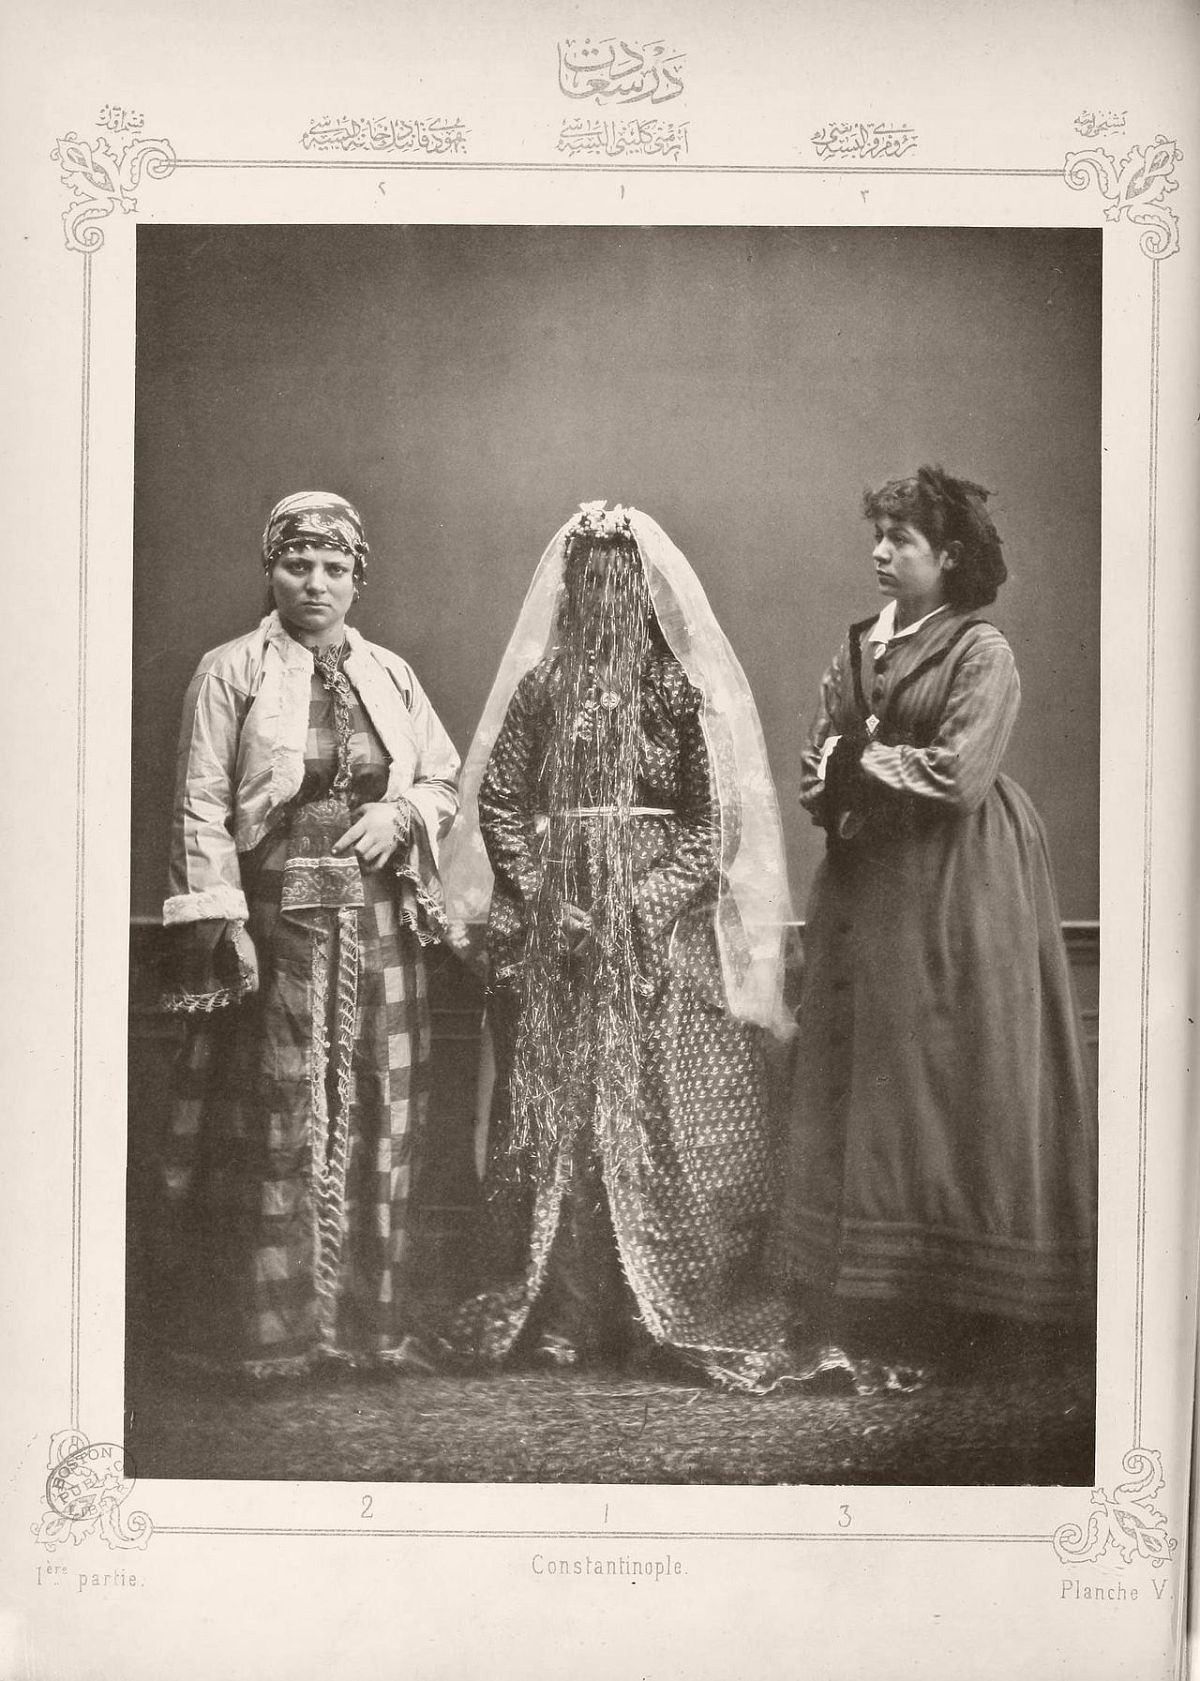 1. Armenian bride 2. Jewish woman from Istanbul 3. Greek girl